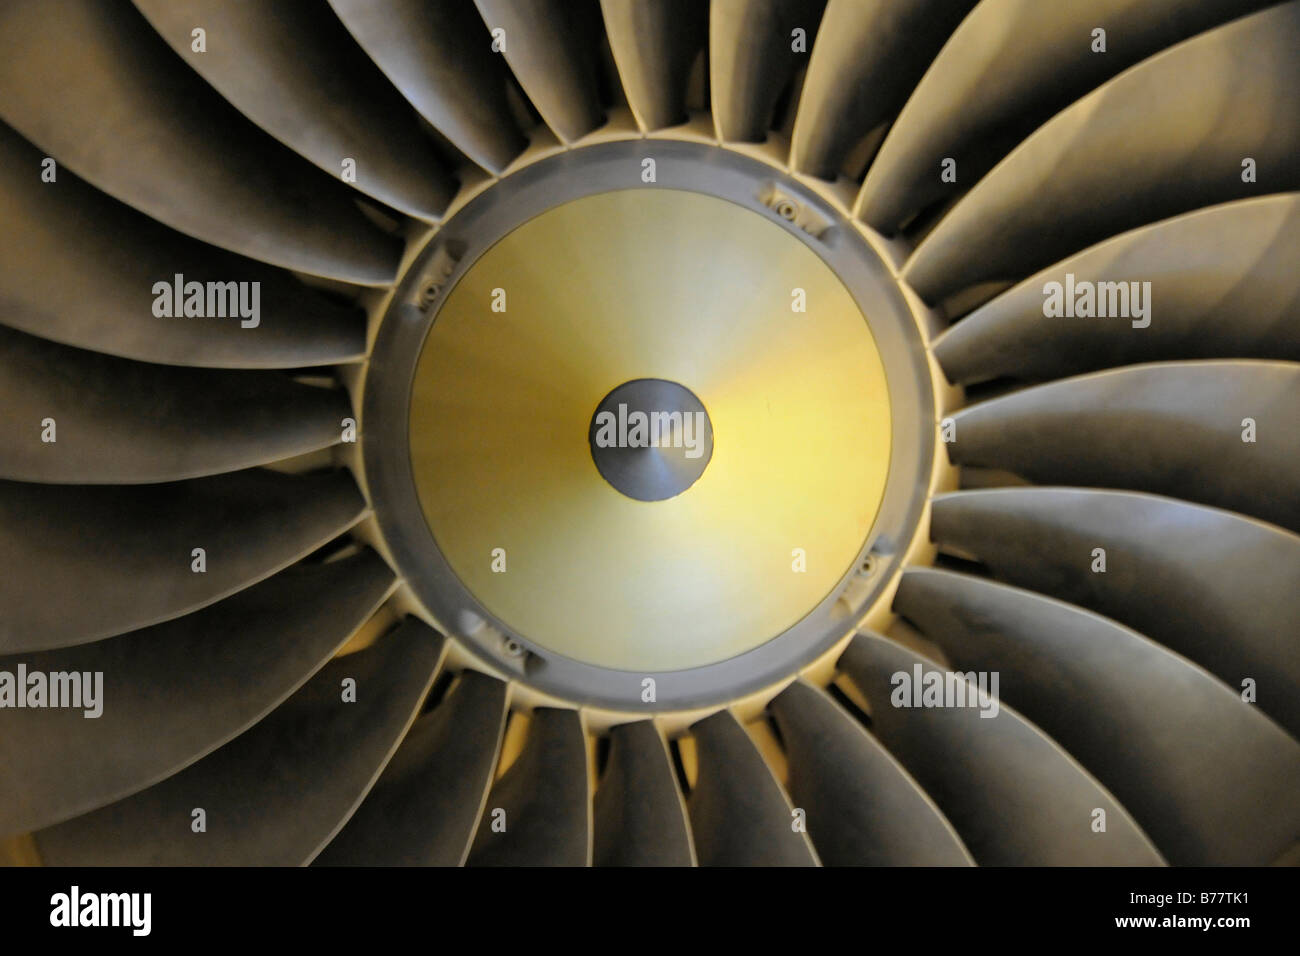 Turbine wheel of an aeroplane engine - Stock Image